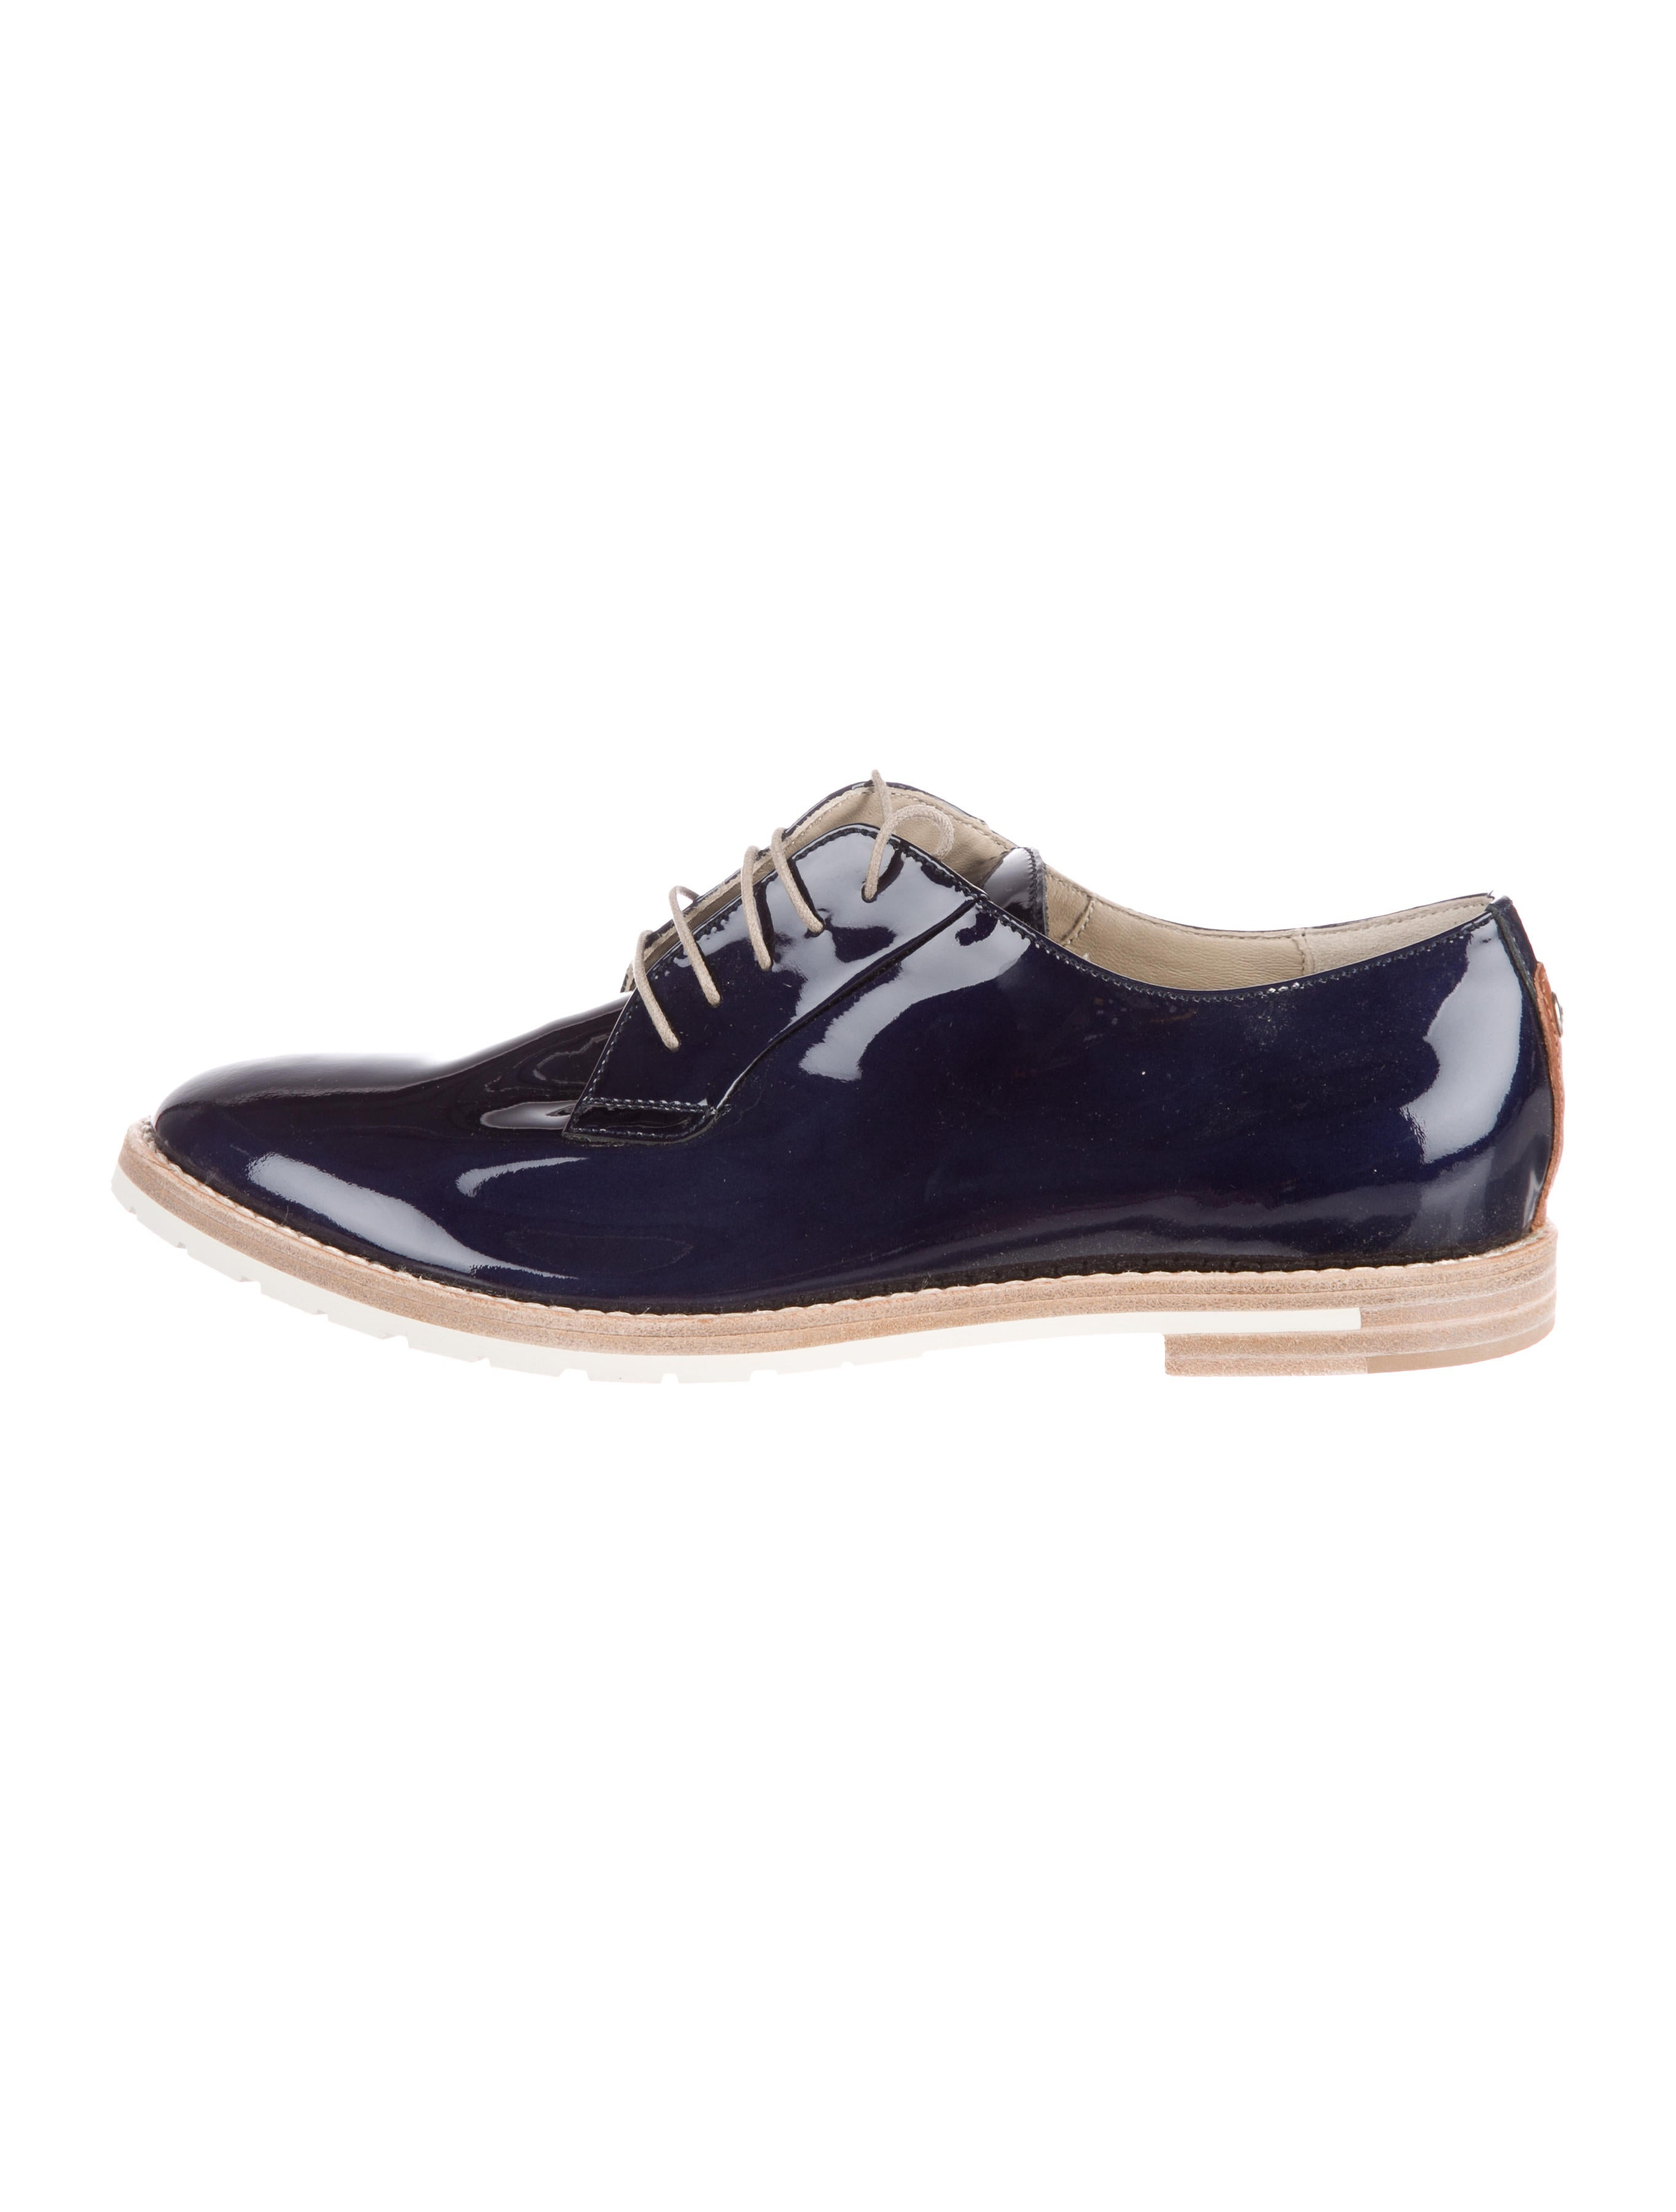 AGL Leather Lace-Up Oxfords w/ Tags countdown package collections the cheapest cheap price cheap visit 9vEjNlX